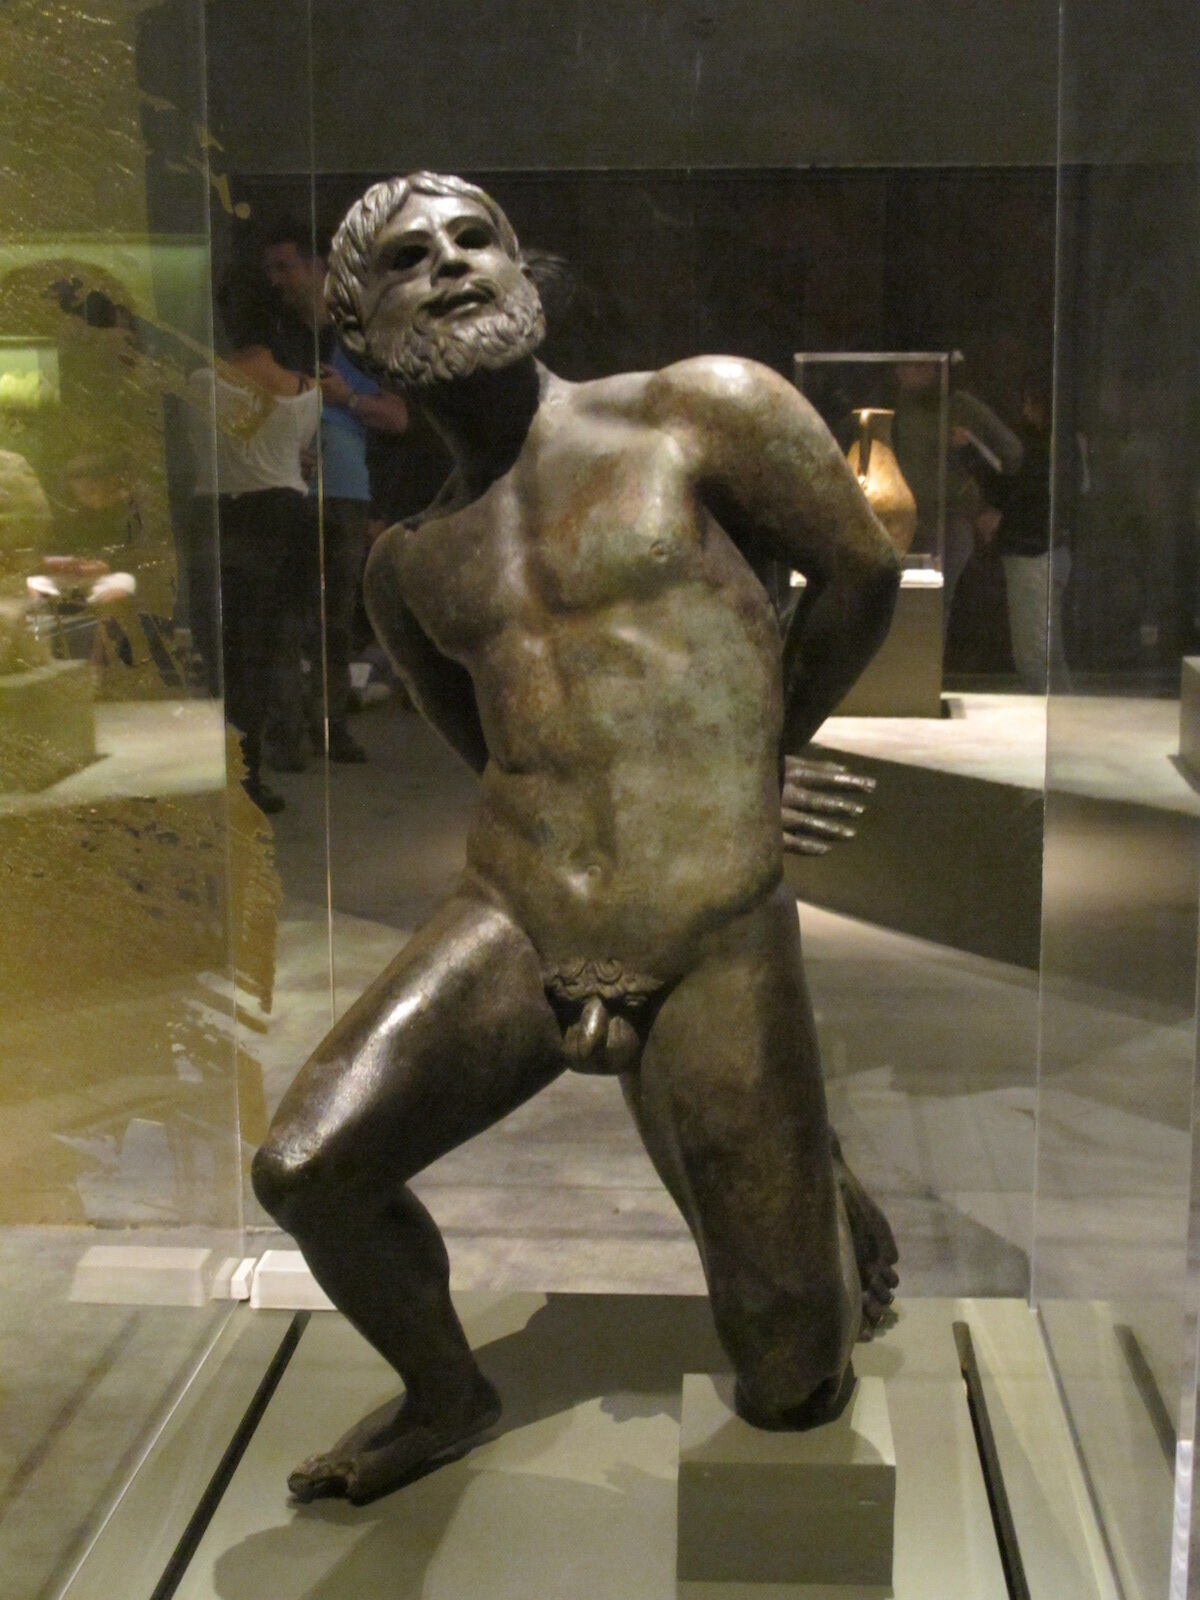 A bronze sculpture from the first century B.C.E. that was recently censored by Facebook. Photo by ho visto nina volare, via Wikimedia Commons.